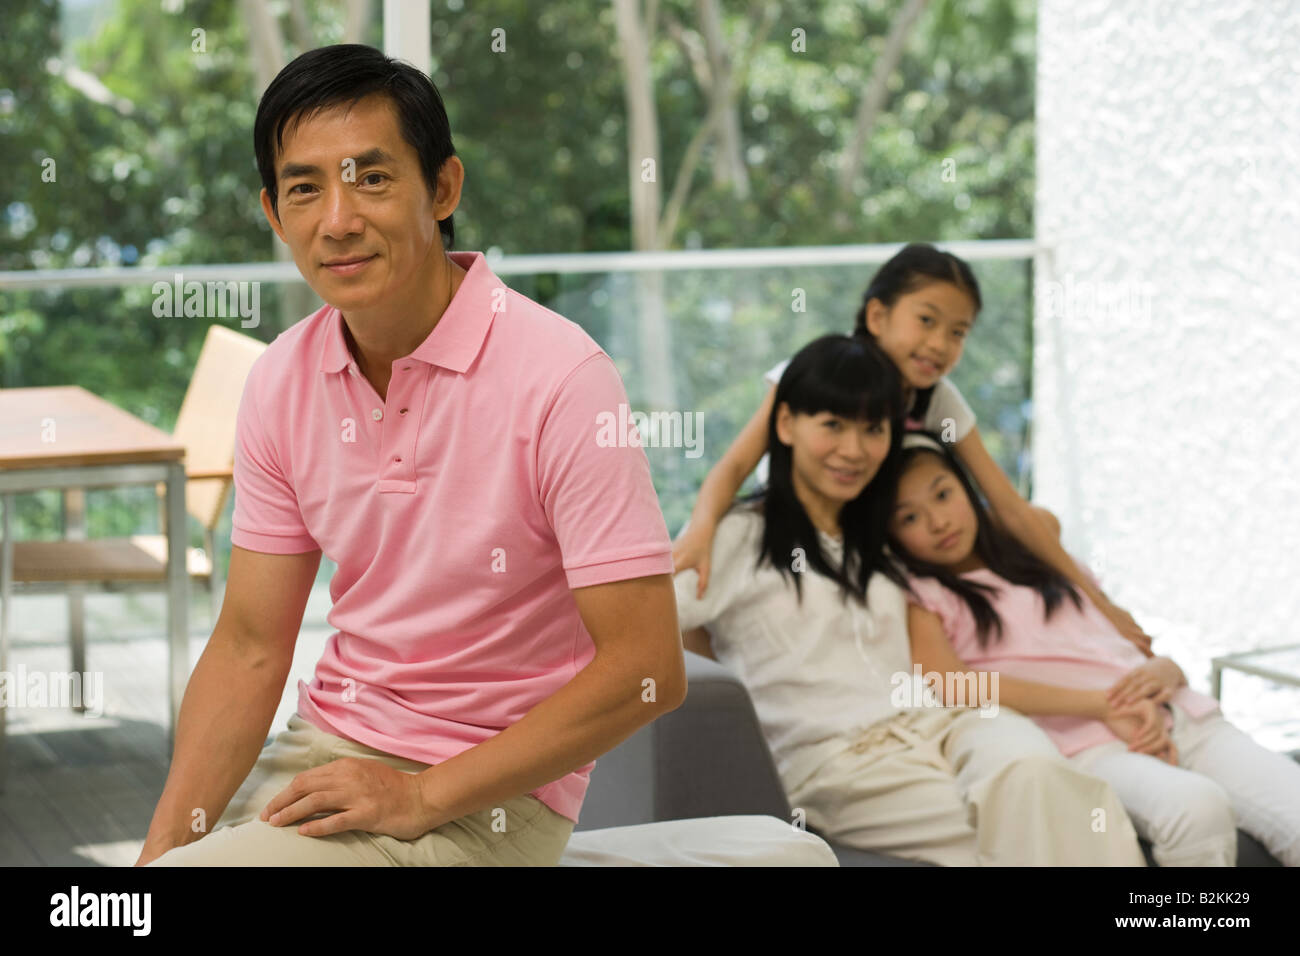 Portrait of a mid adult man smiling with his family in the background in a living room Stock Photo